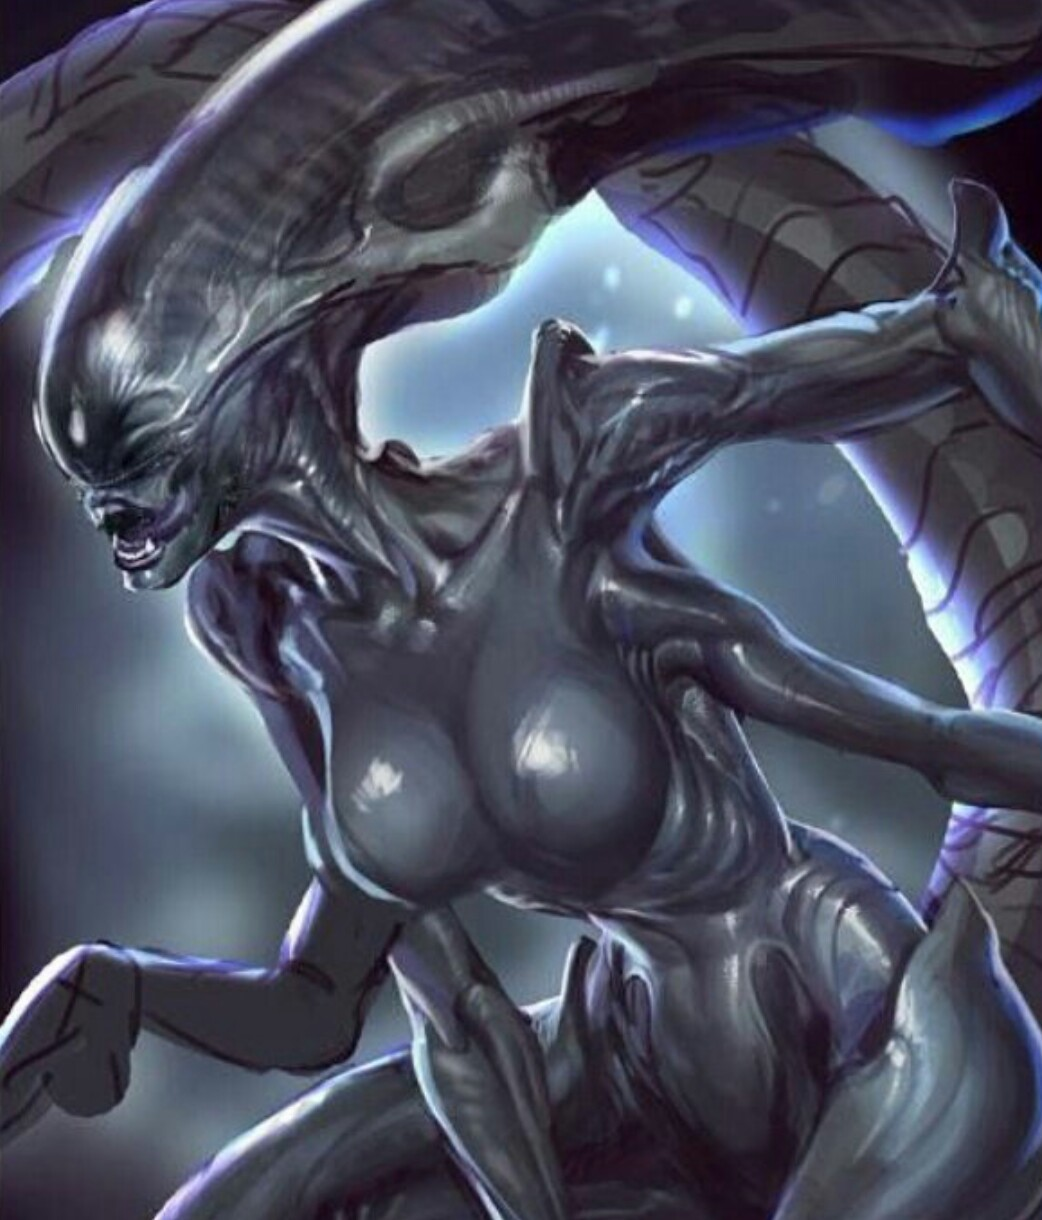 Monsters vs alien hentai sex pic sex images